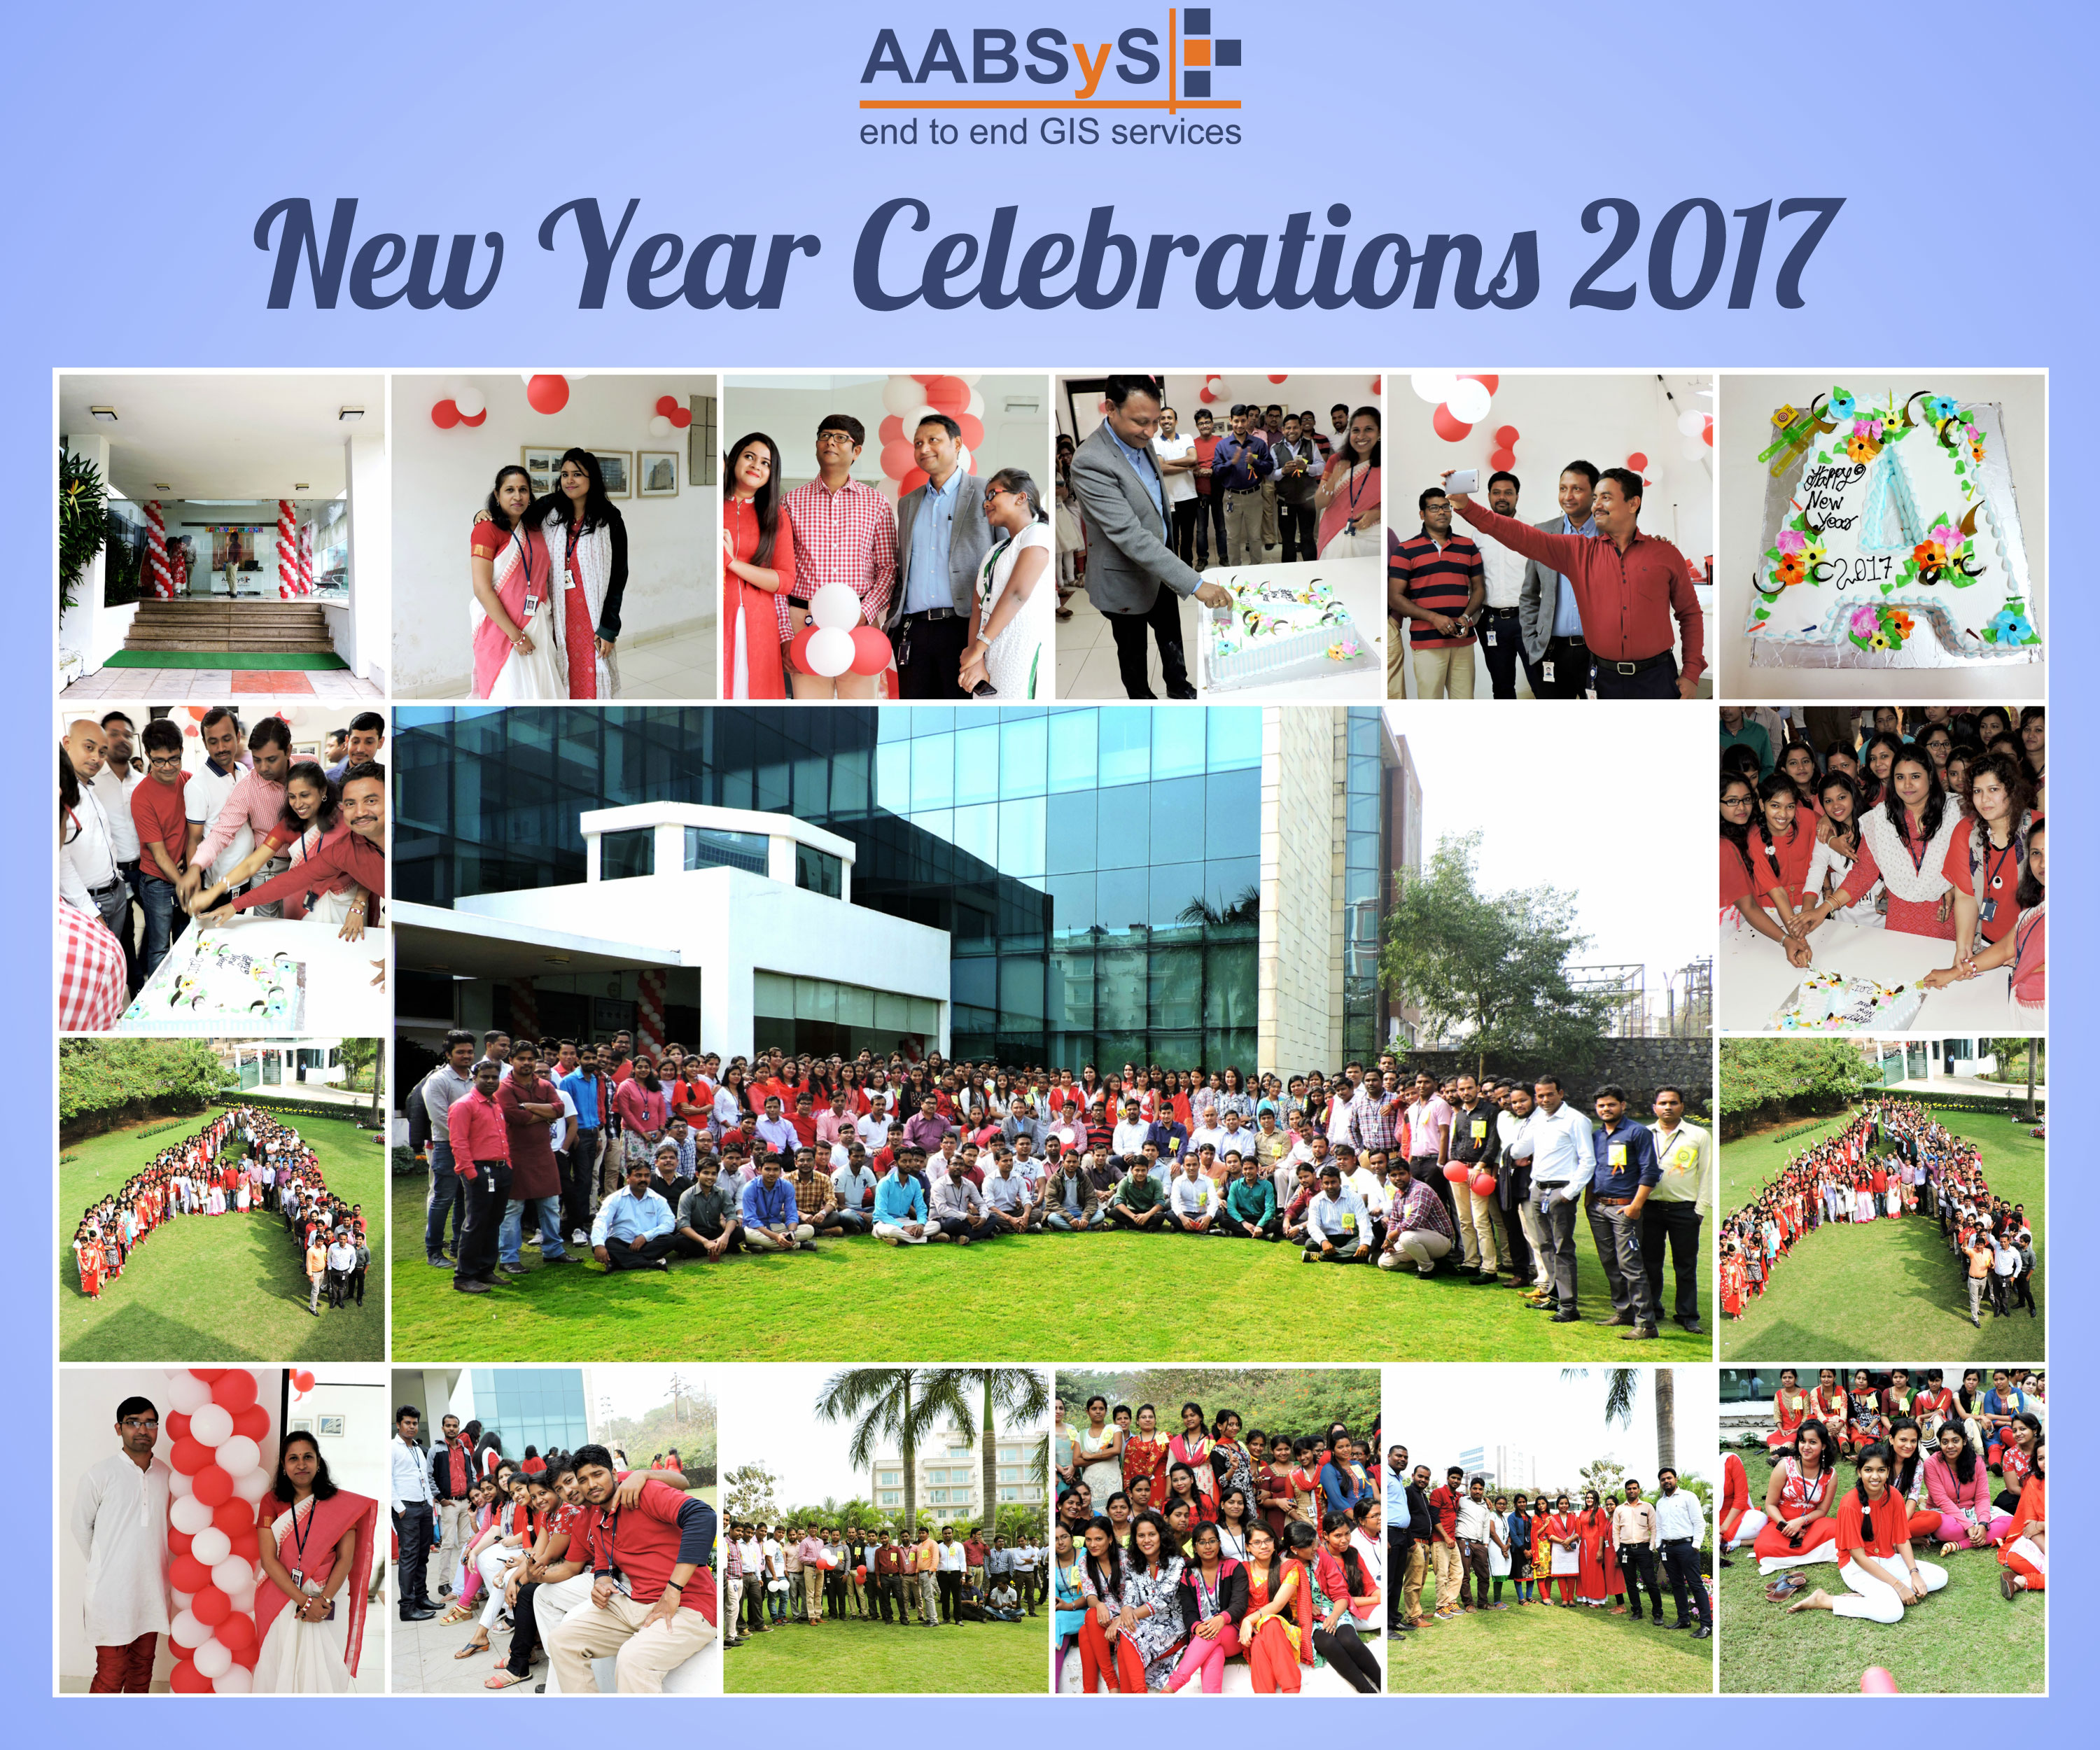 AABSyS IT Celebrates New Year 2017 with Splendour